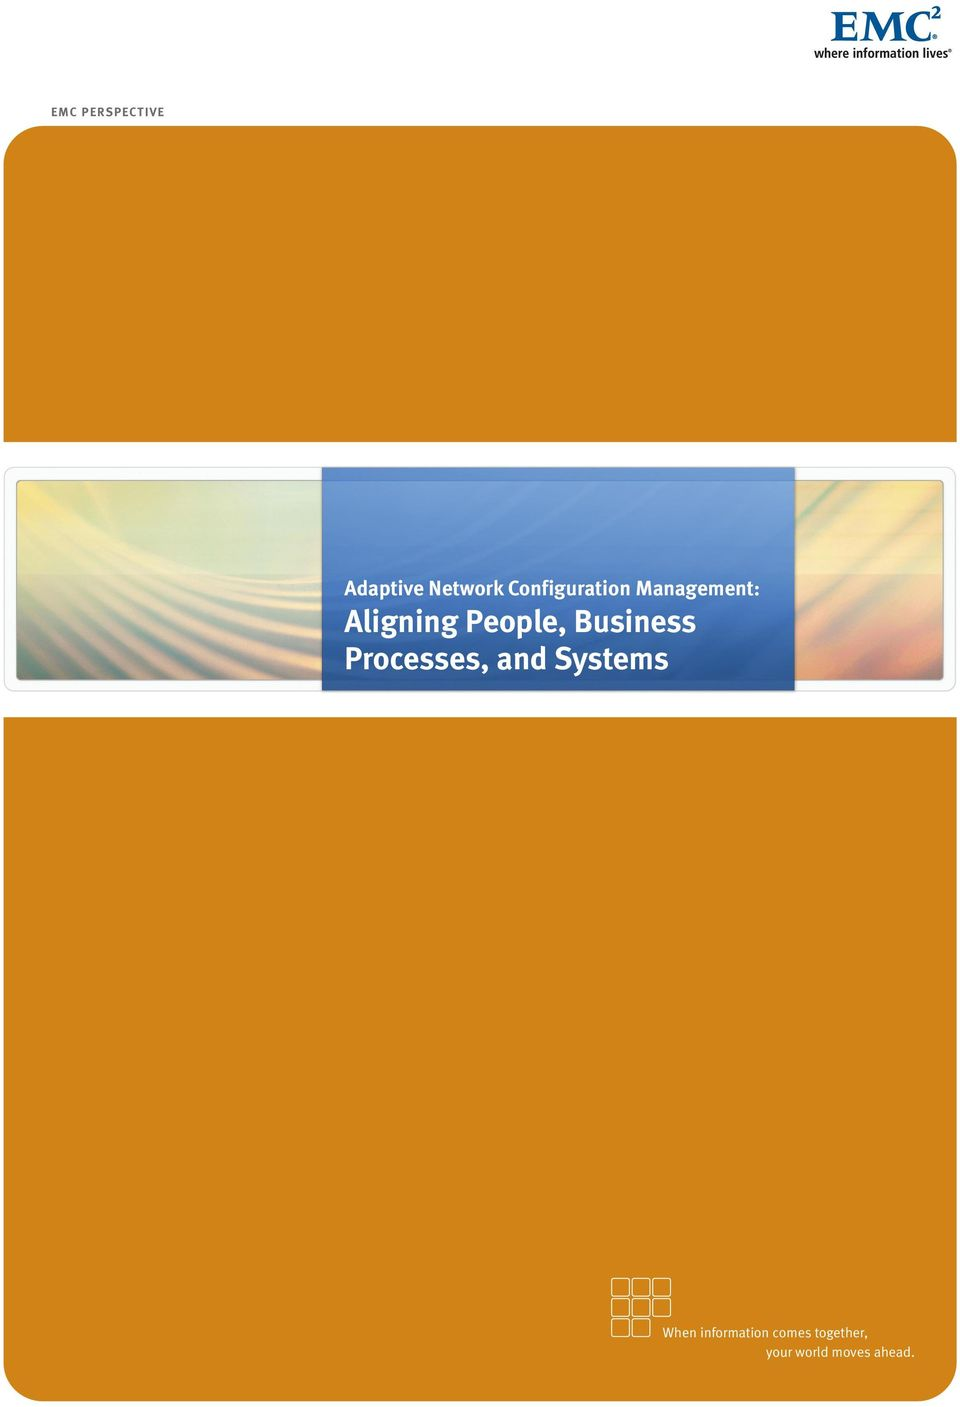 People, Business Processes, Systems